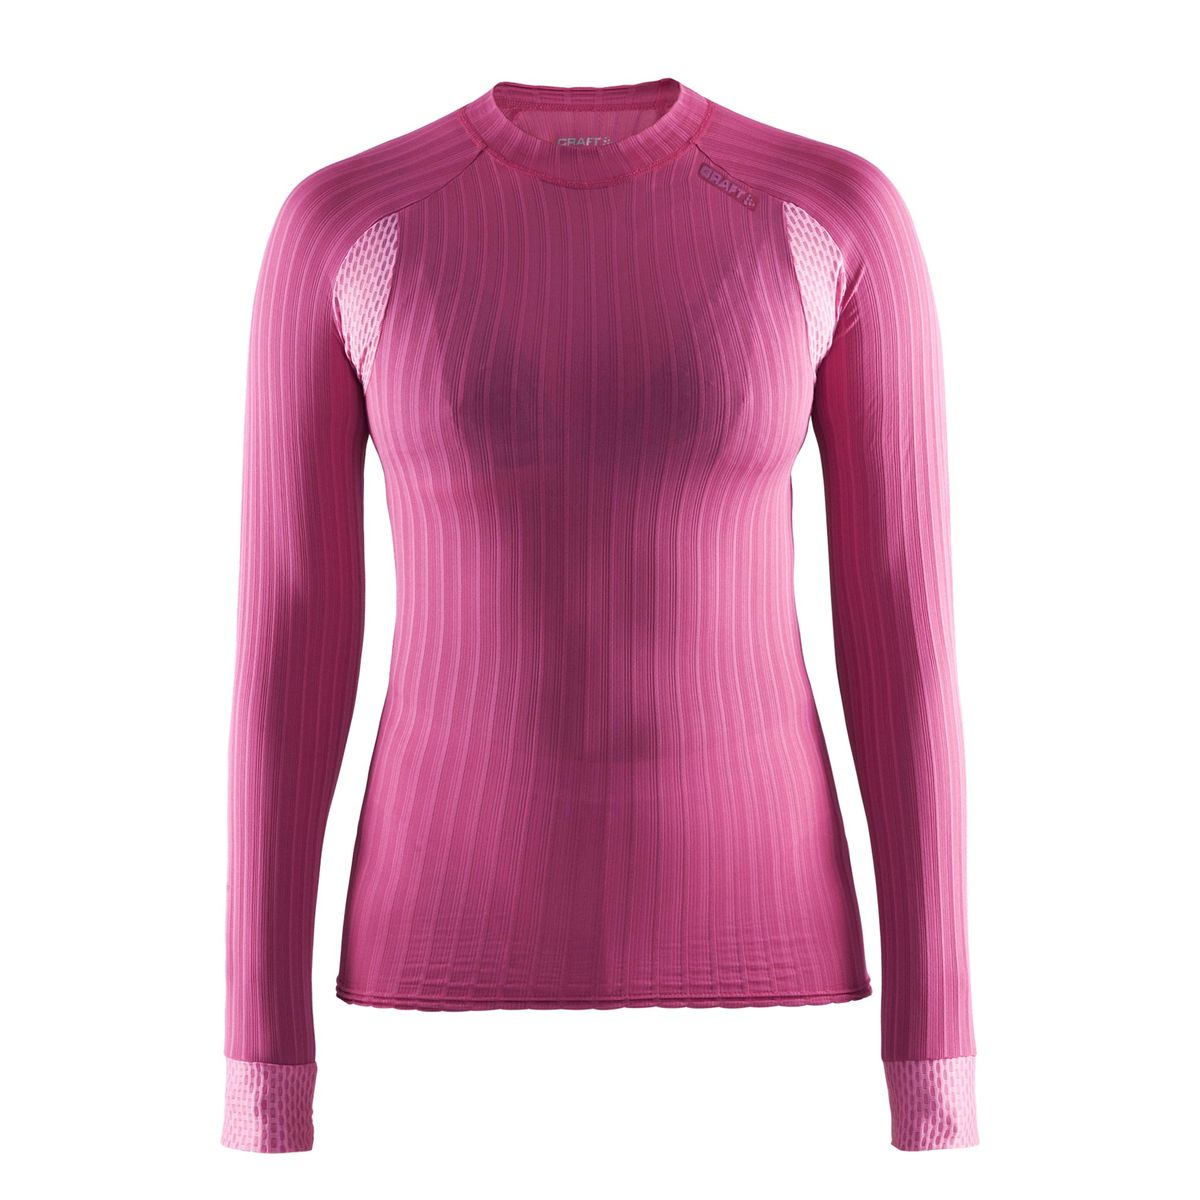 ACTIVE EXTREME 2.0 CN women's long-sleeved base layer